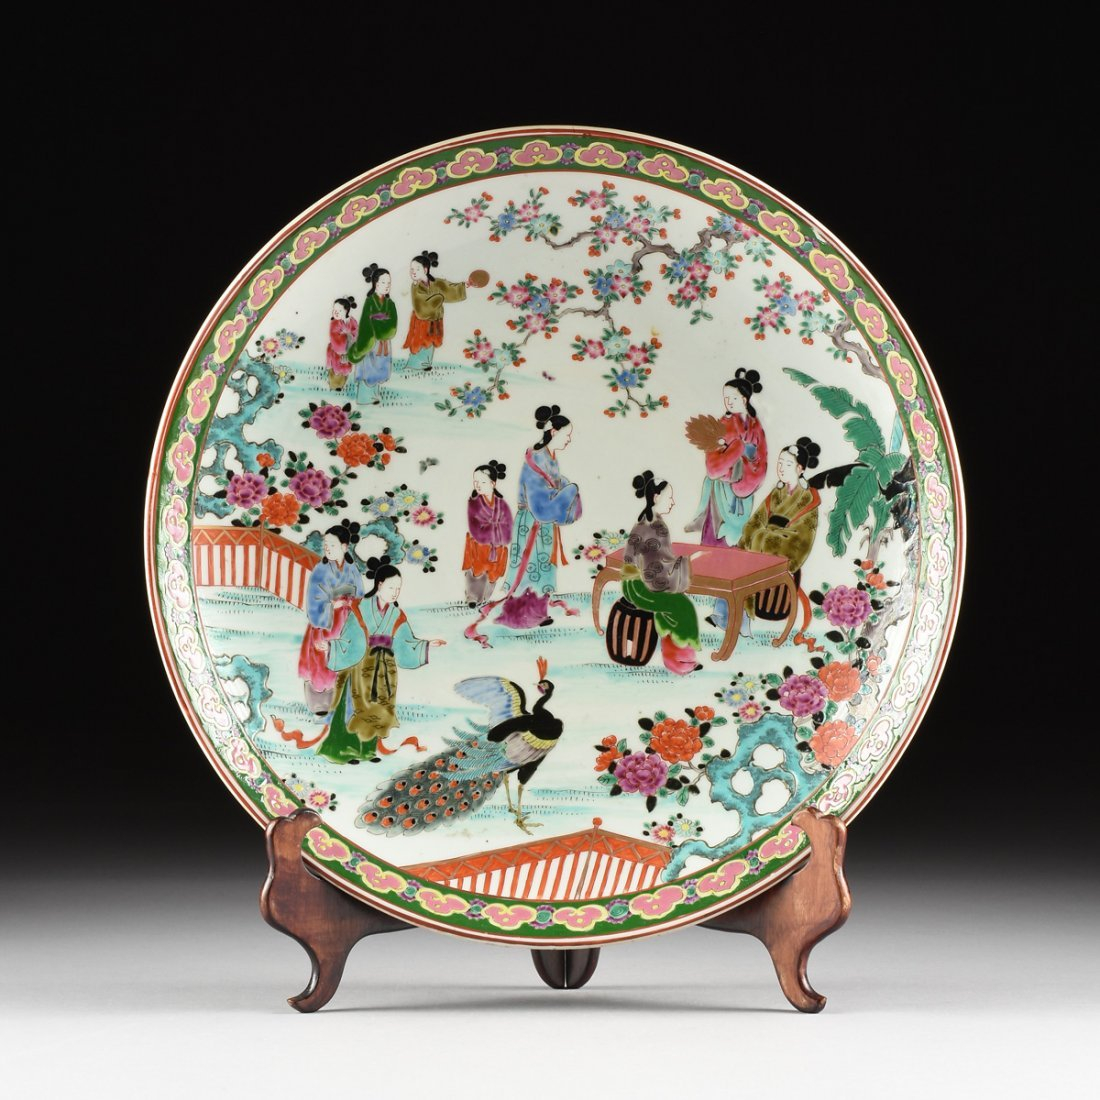 A LARGE JAPANESE POLYCHROME ENAMELED PORCELAIN CHARGER,